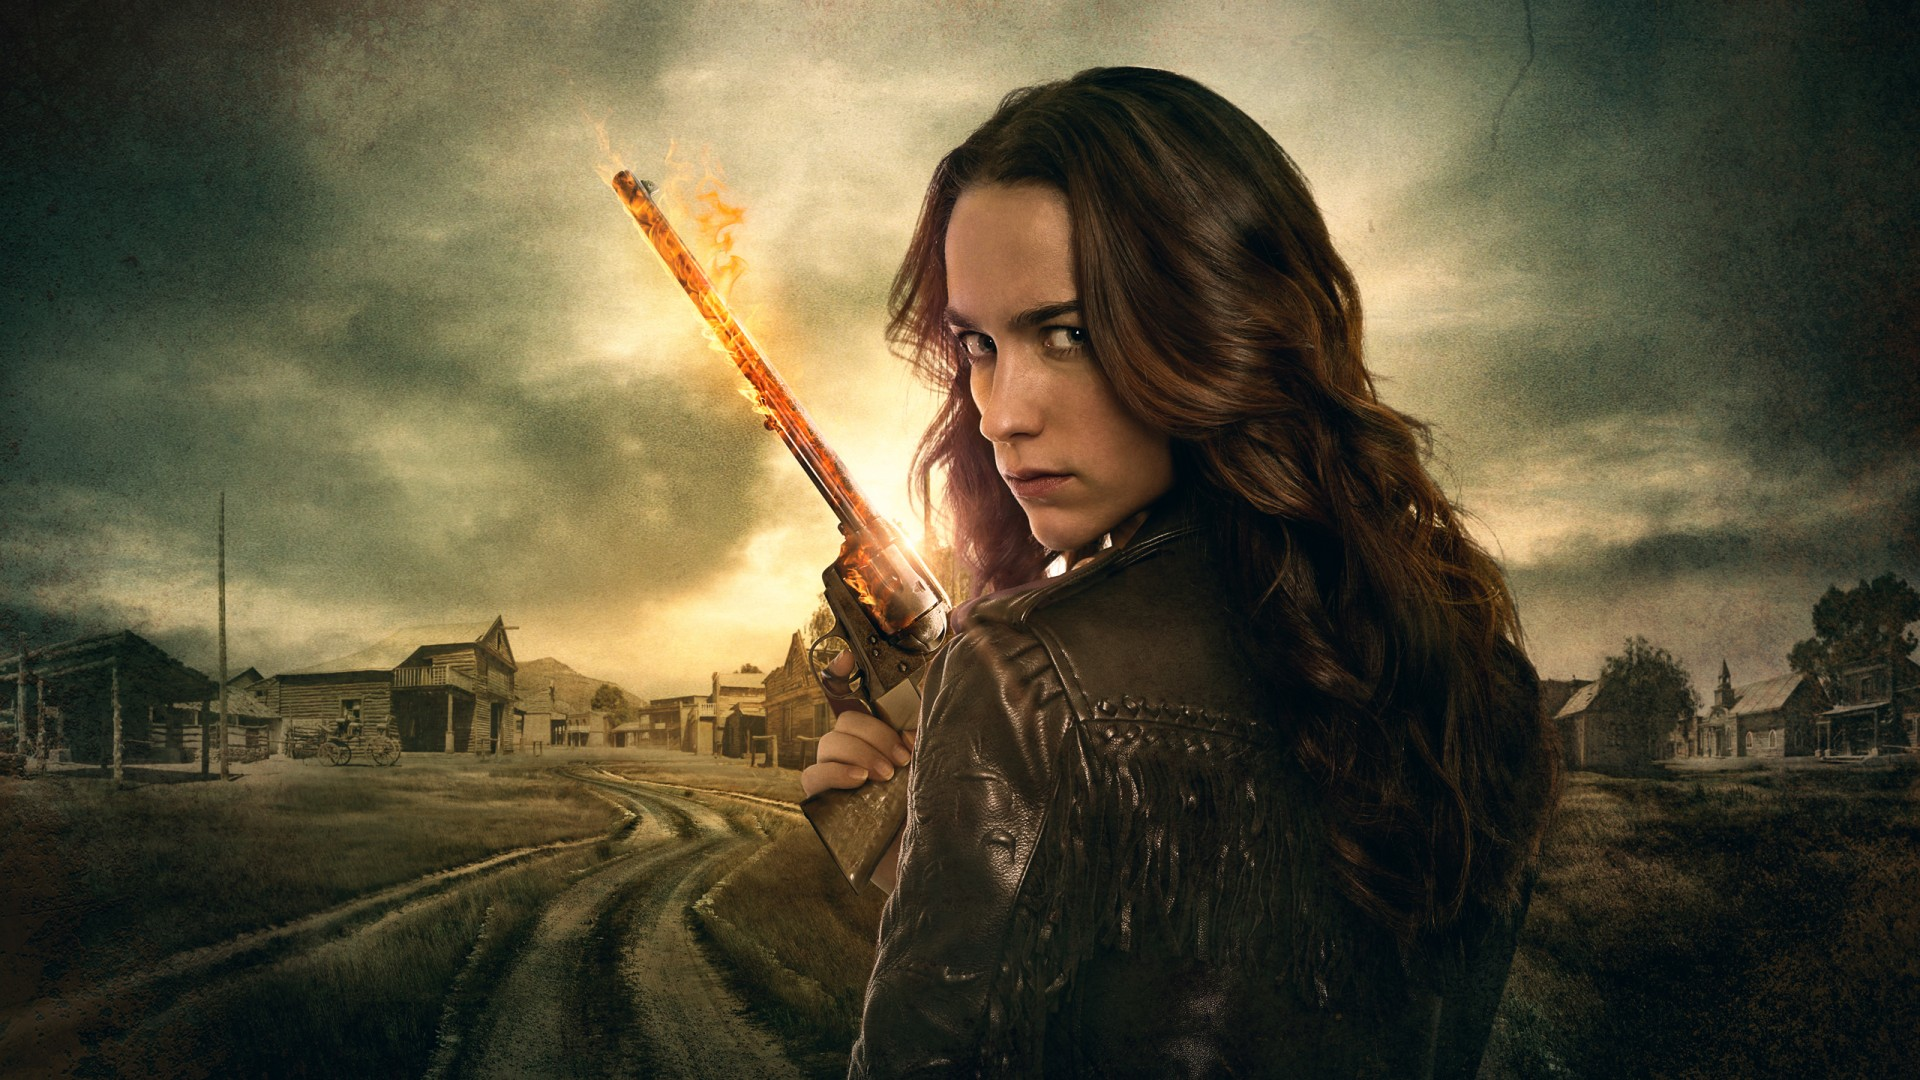 Wallpaper Hd Anime Girl Melanie Scrofano Wynonna Earp Wallpapers Hd Wallpapers